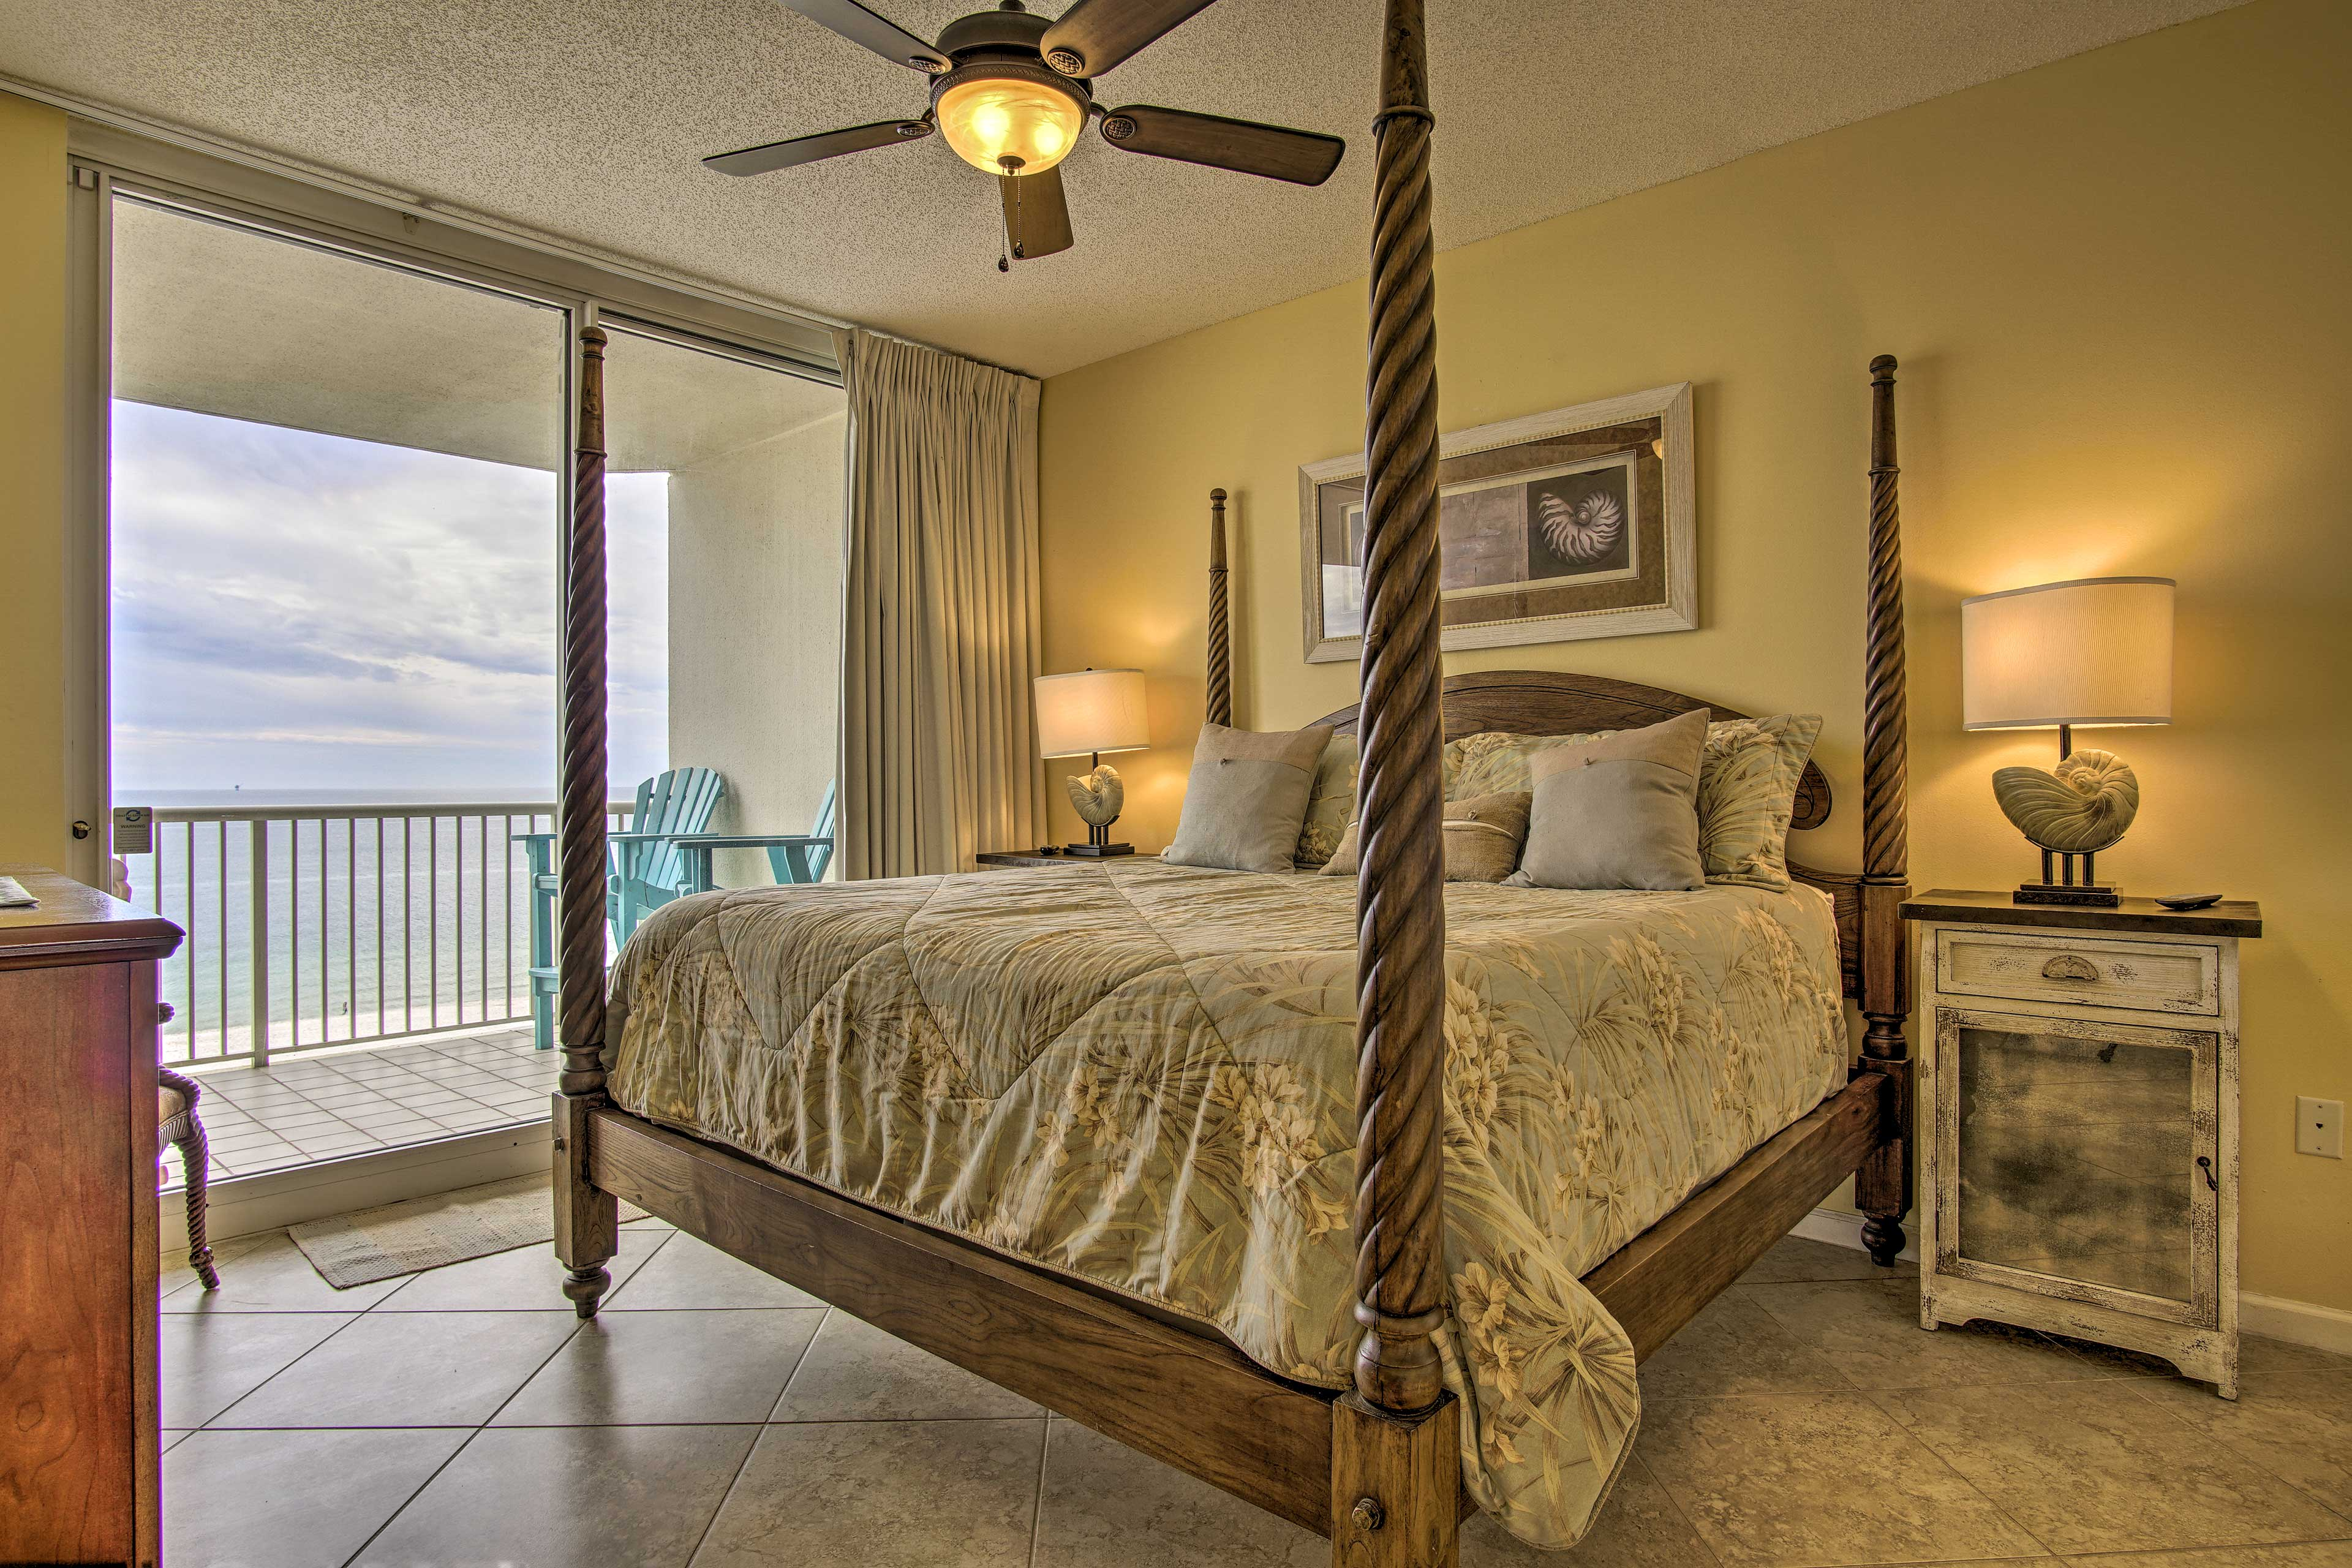 Lay back in the comfy 4-poster king bed in the master bedroom.